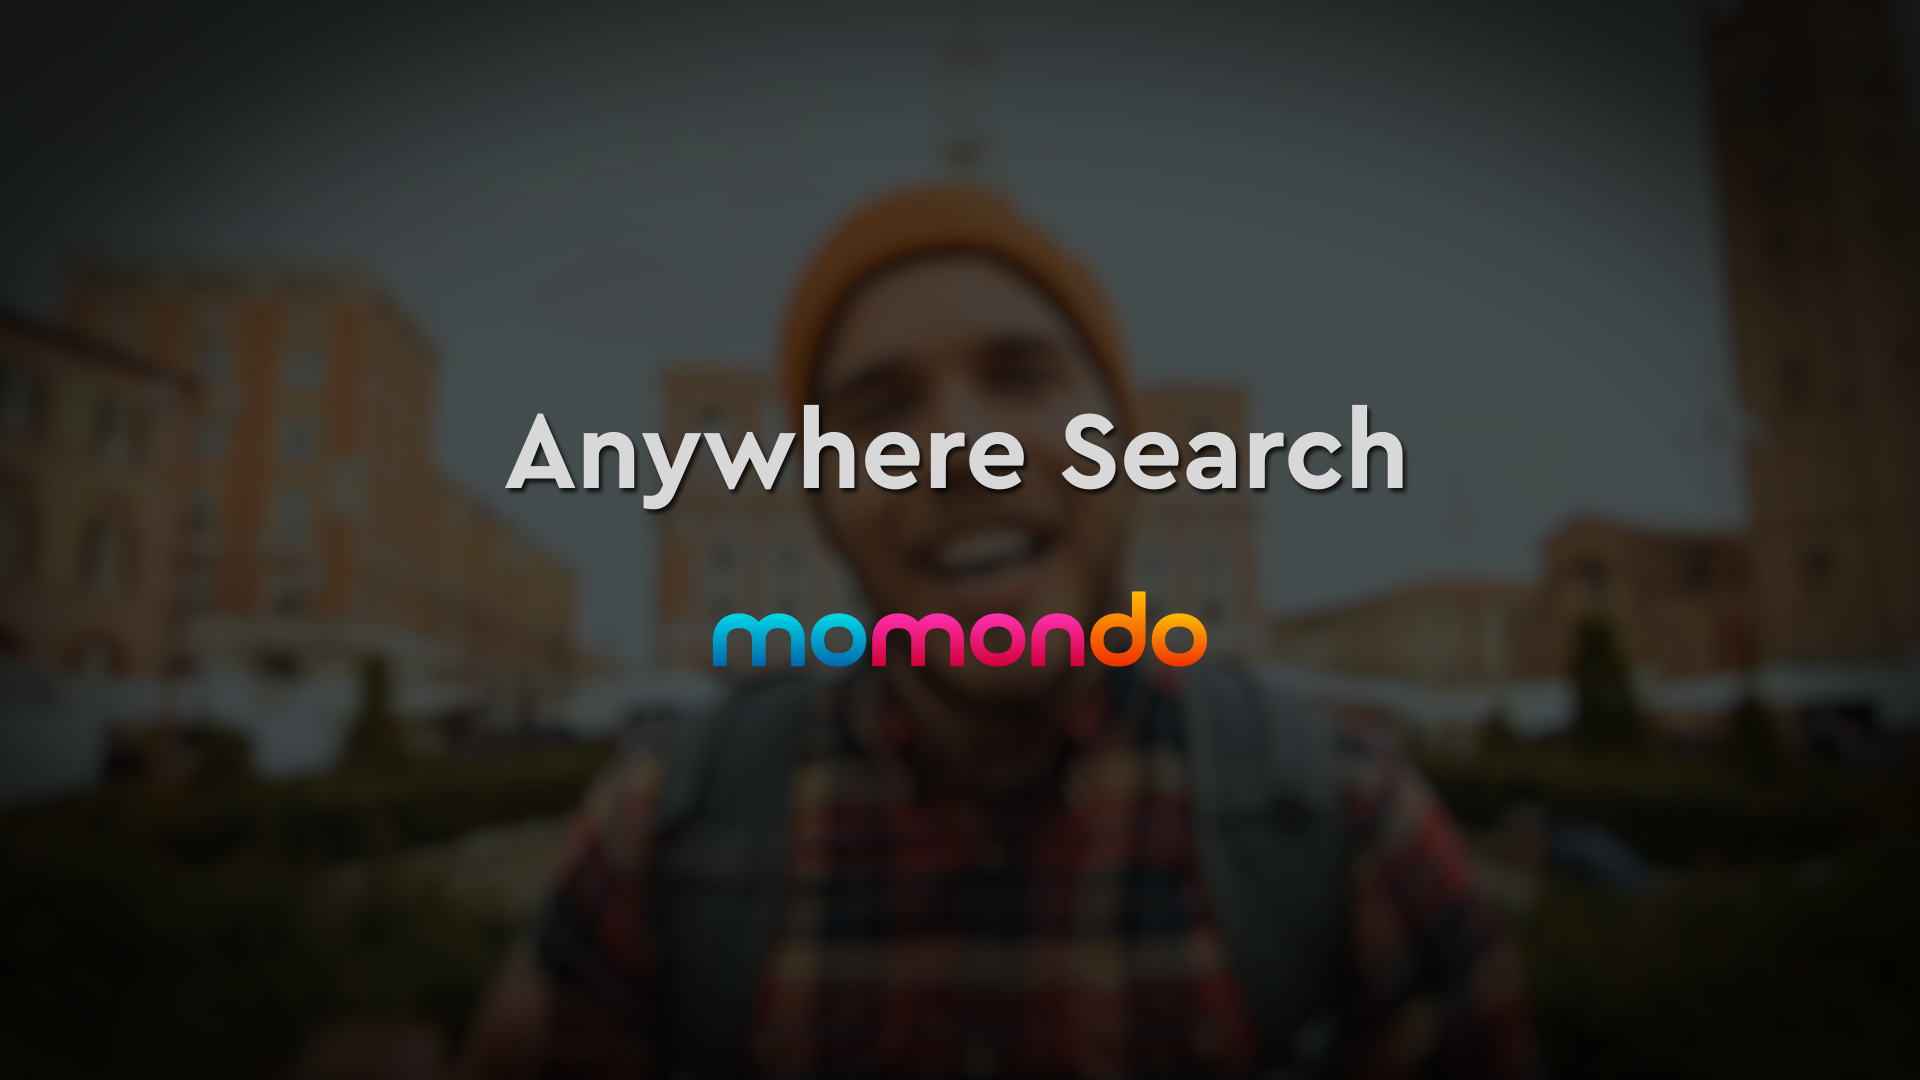 Anywhere Search